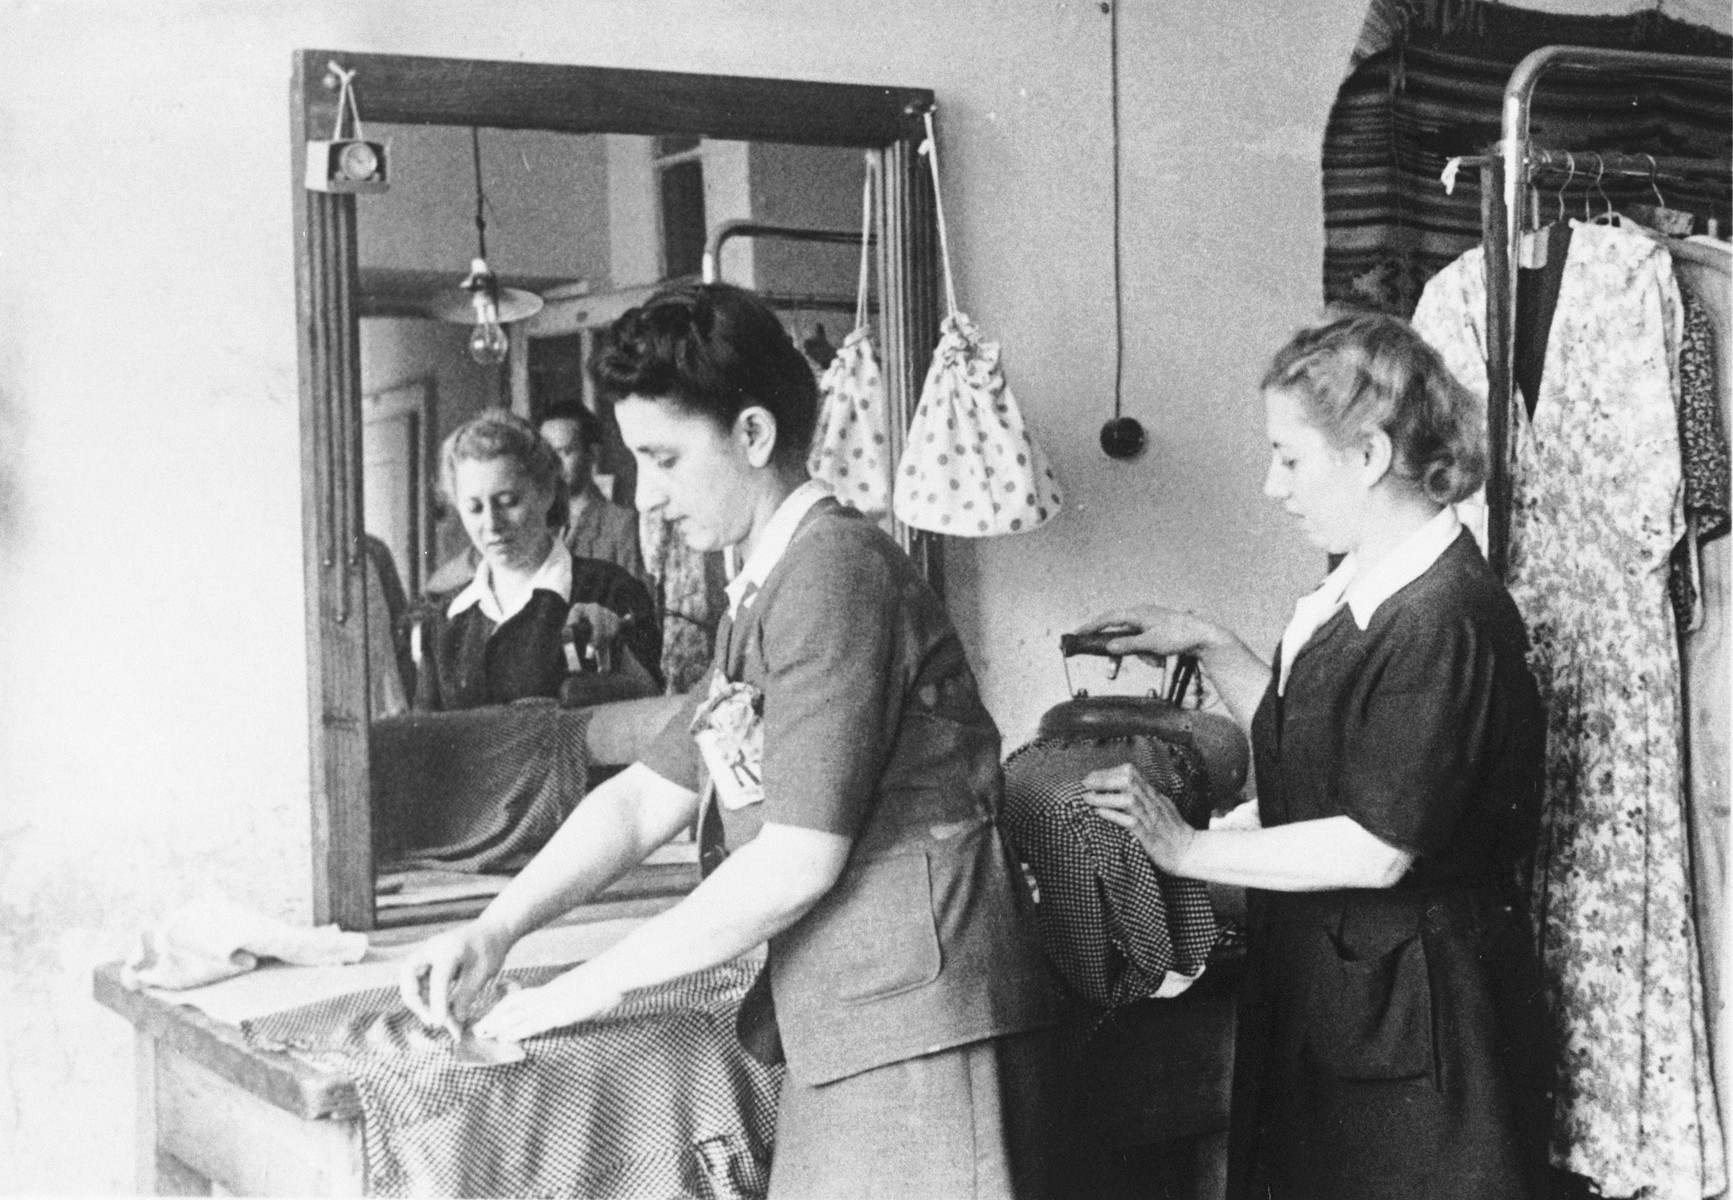 Female employees work in the Julius Madritsch Ladies' Custom Shop.  Pictured are Lusia Eichenholz (left) and Paula (right).